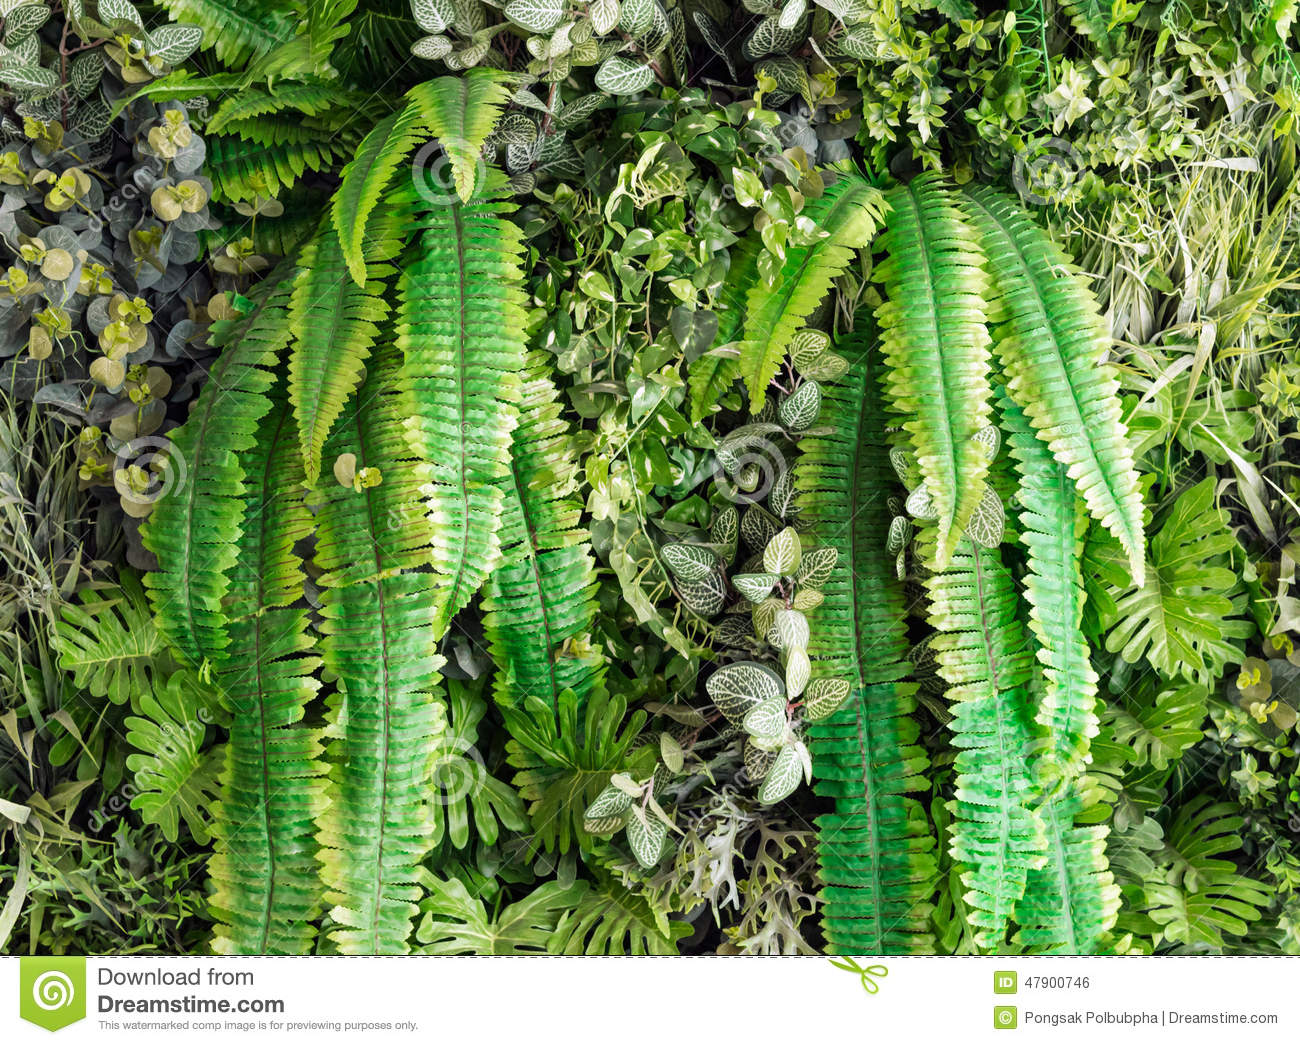 Artificial Vertical Garden Stock Photo Image 47900746